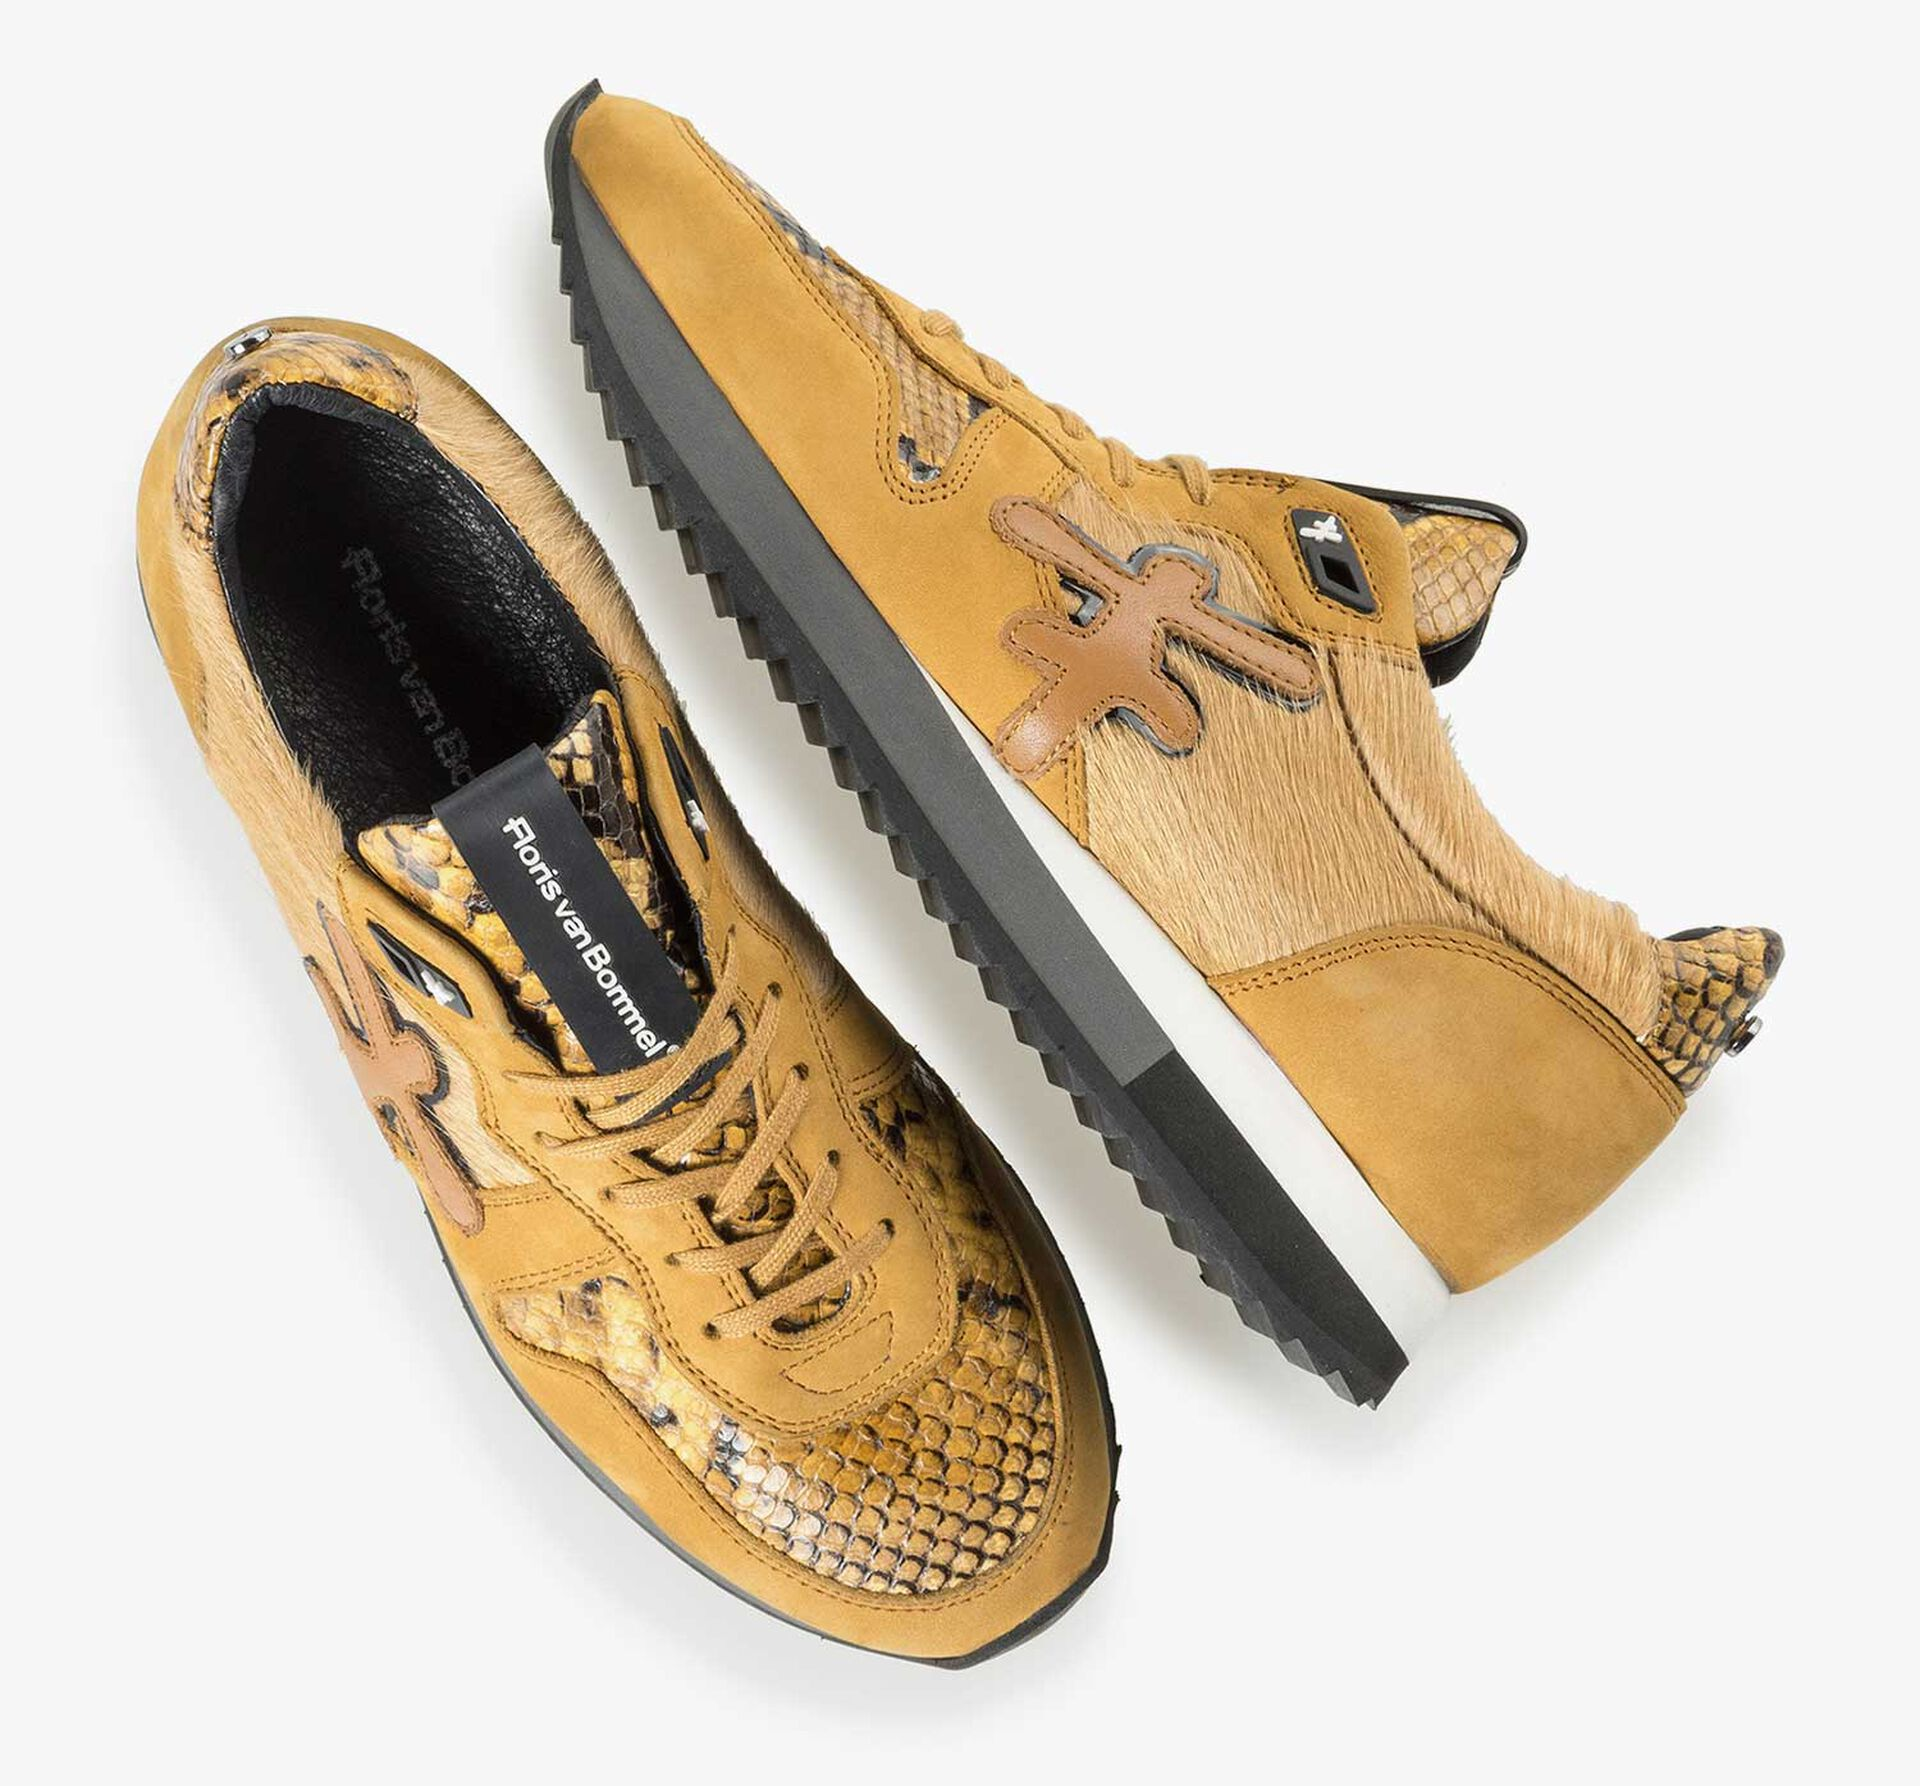 Ochre yellow sneaker with pony hair